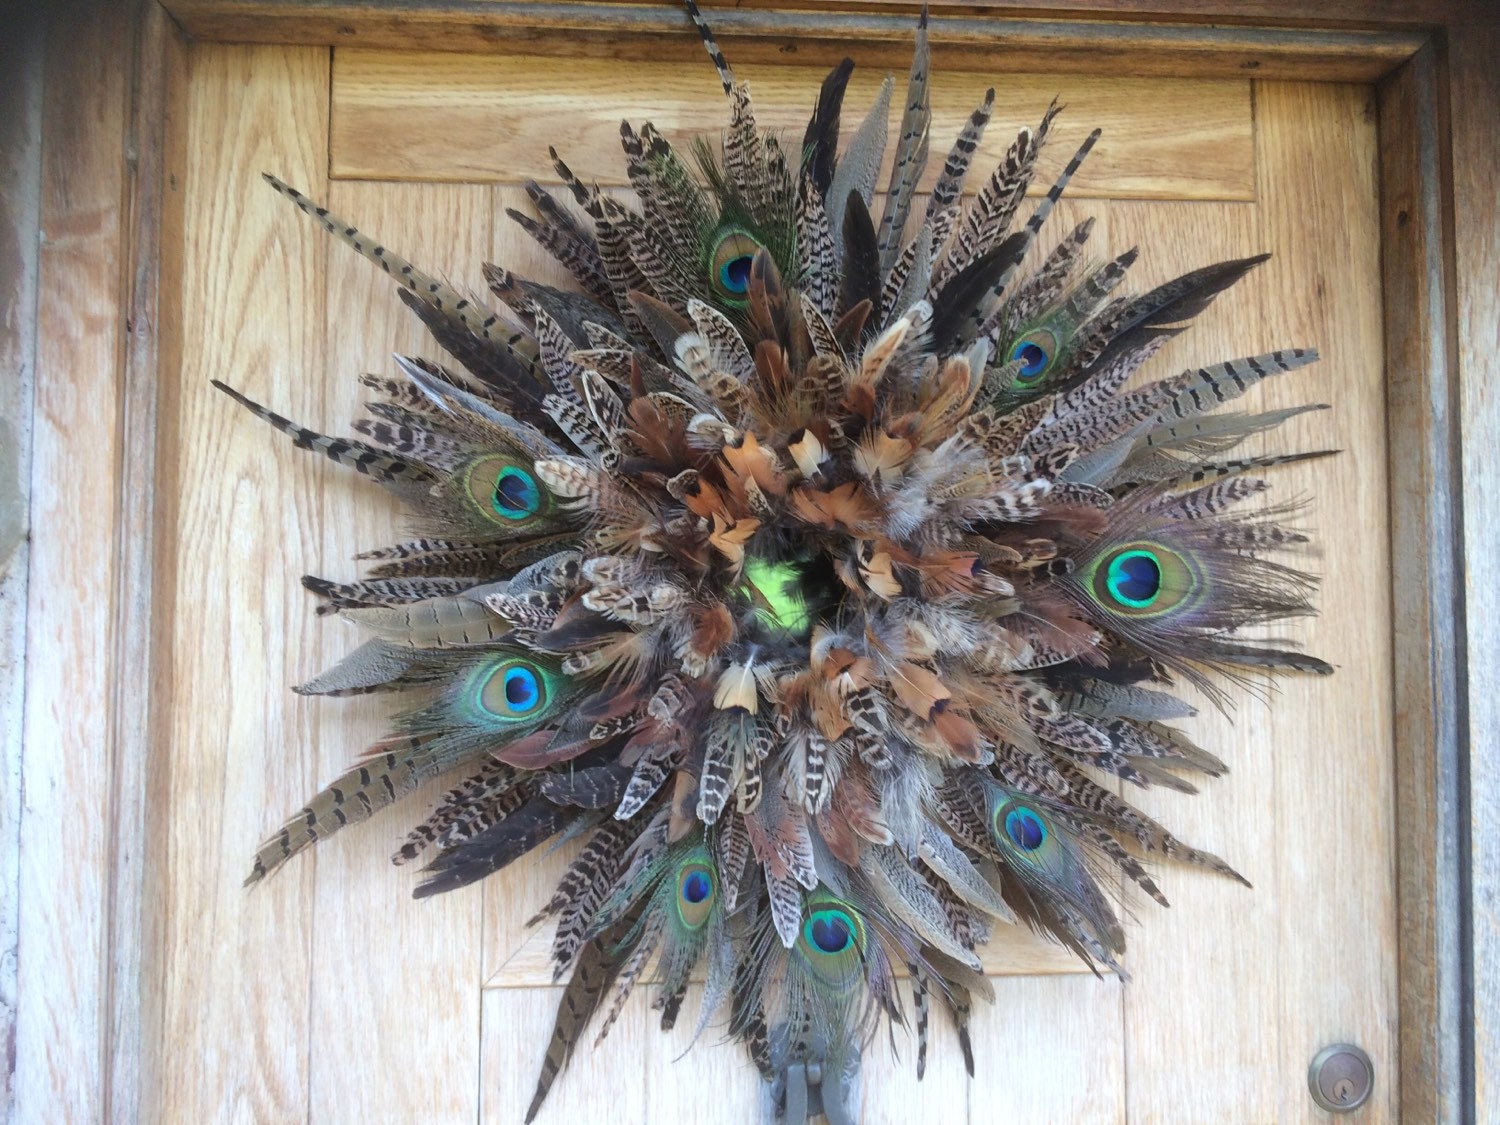 Pheasant feather wreath/wall decor with peacock feathers